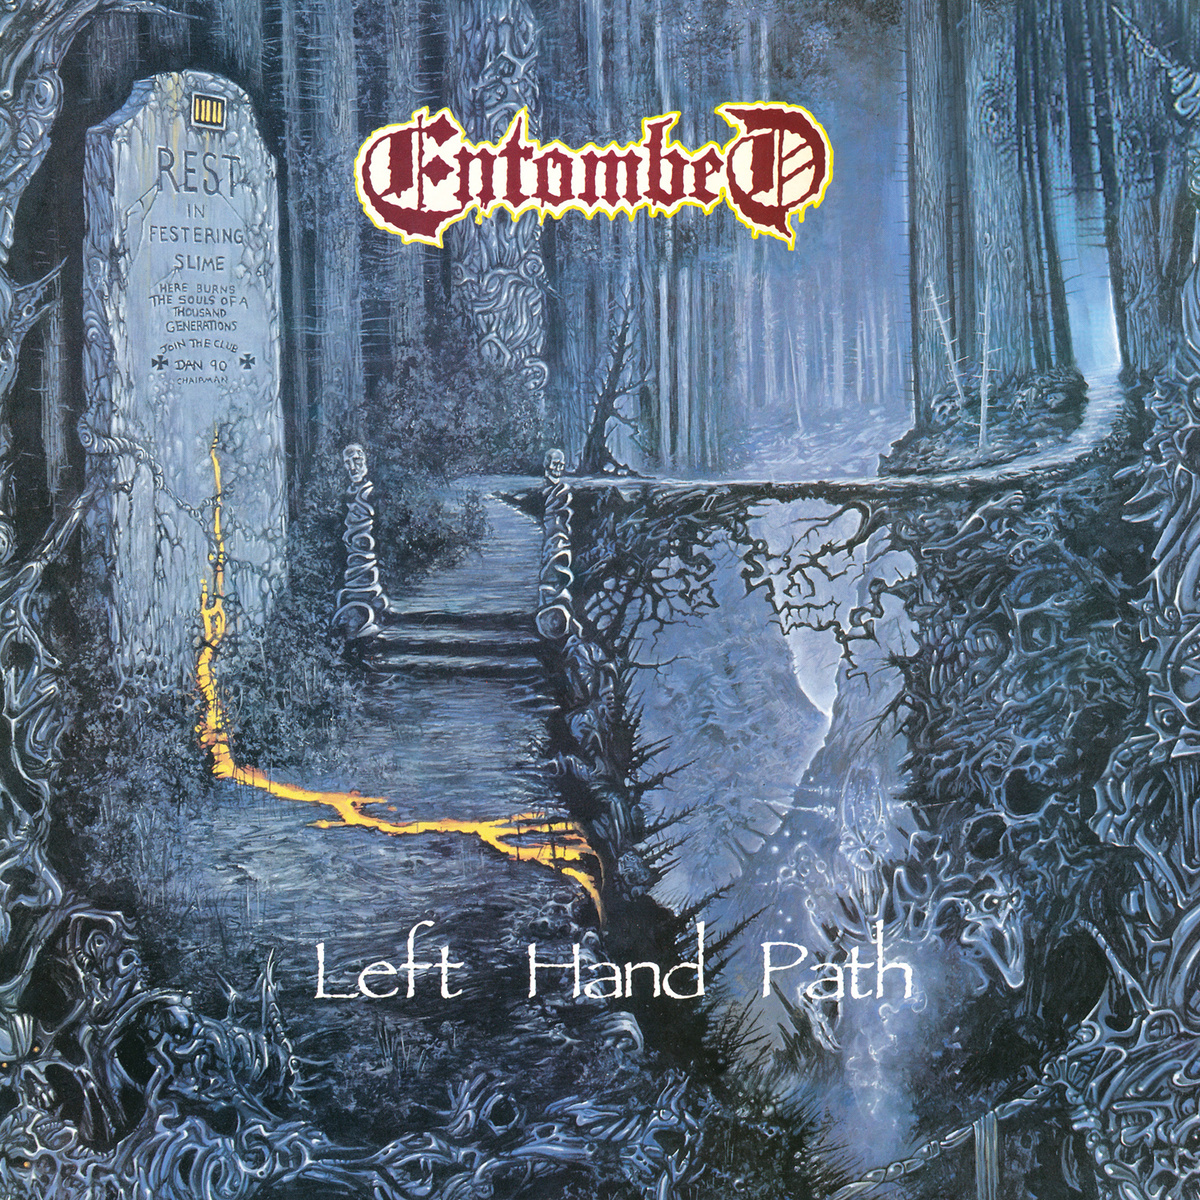 Yer Metal is Olde! Entombed – Left Hand Path